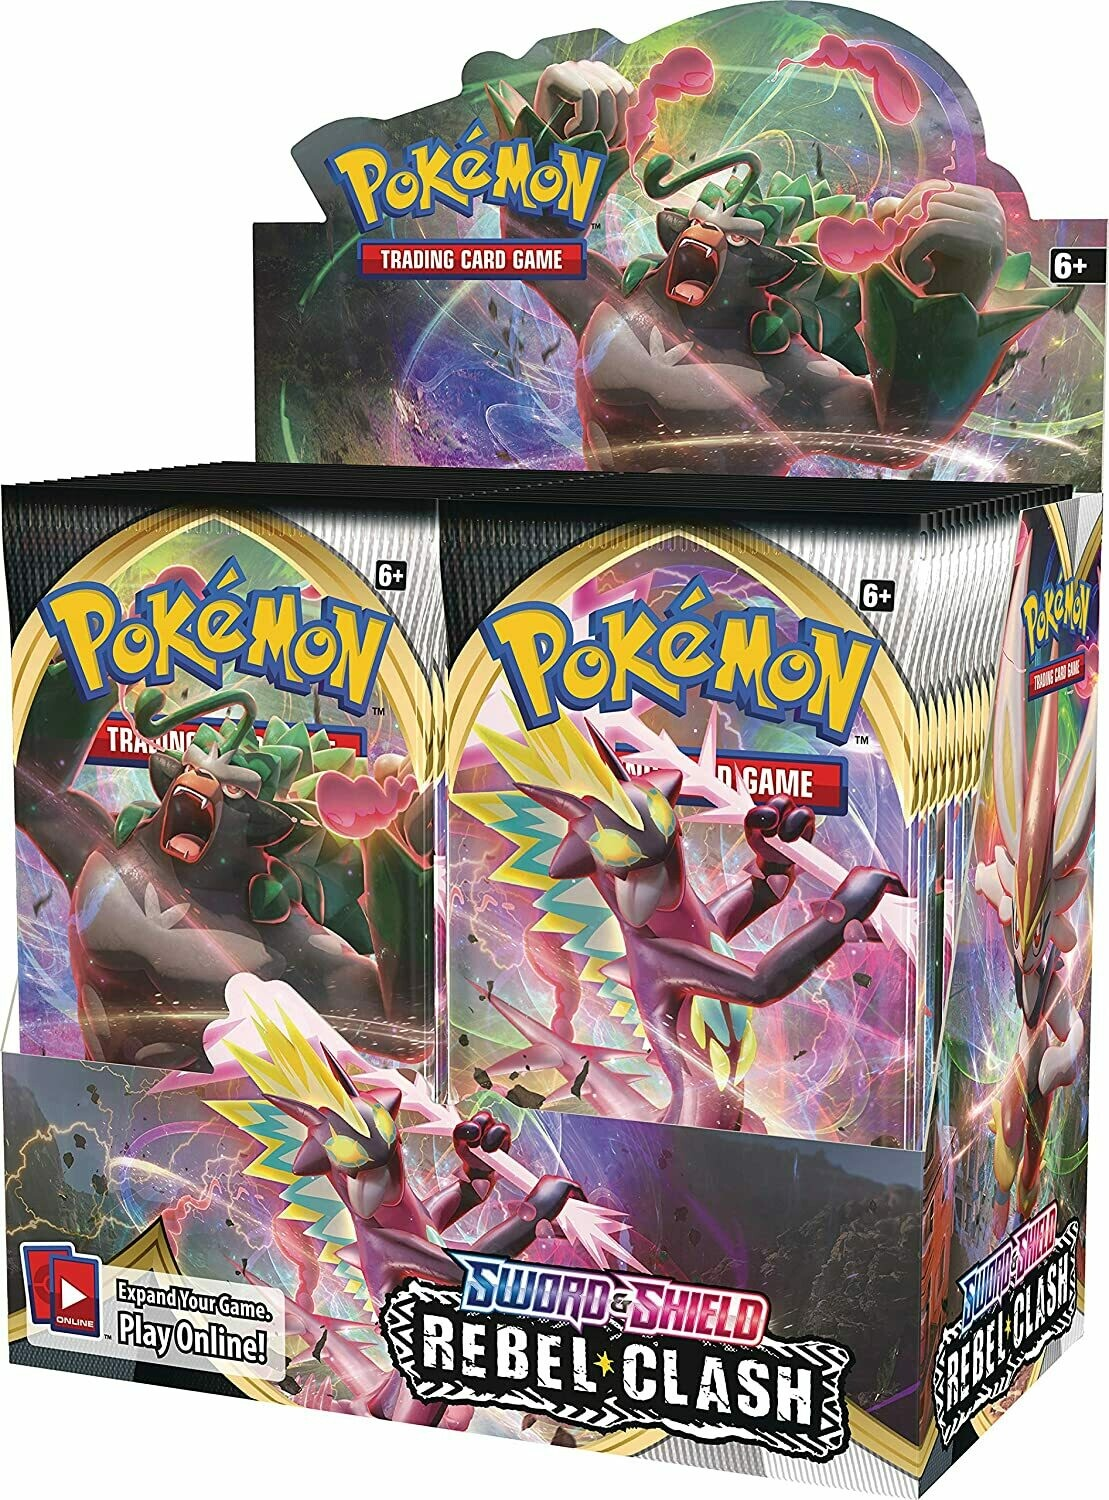 Pokemon Sword & Shield Rebel Clash Booster Box - BONUSPACK